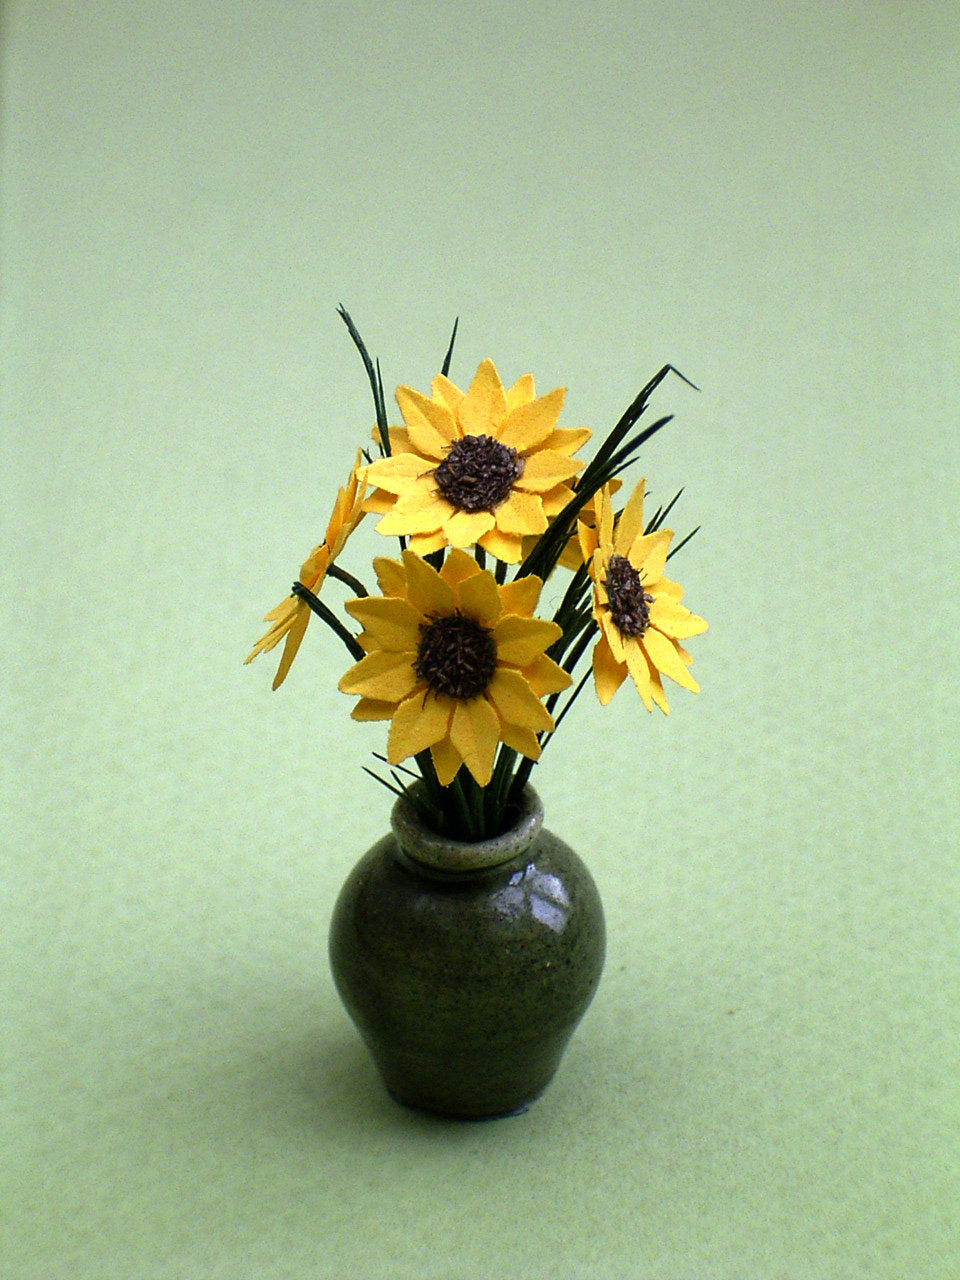 Small Sunflowers Paper Flower Kit  for 1/12th scale Dollhouses, Florists and Miniature Gardens